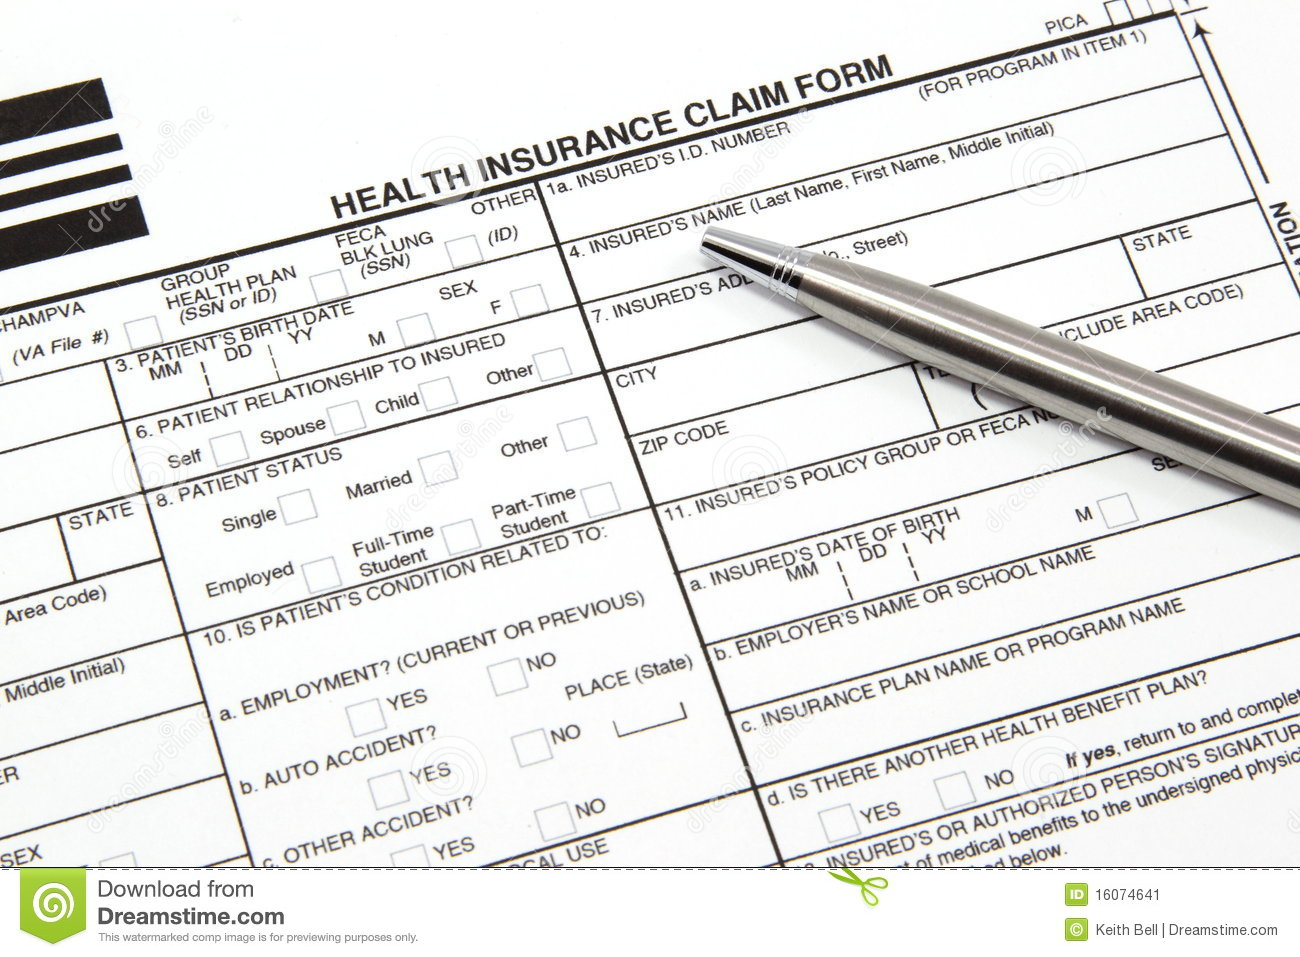 How to Claim Health Insurance on Your 2014 Taxes How to Claim Health Insurance on Your 2014 Taxes new photo